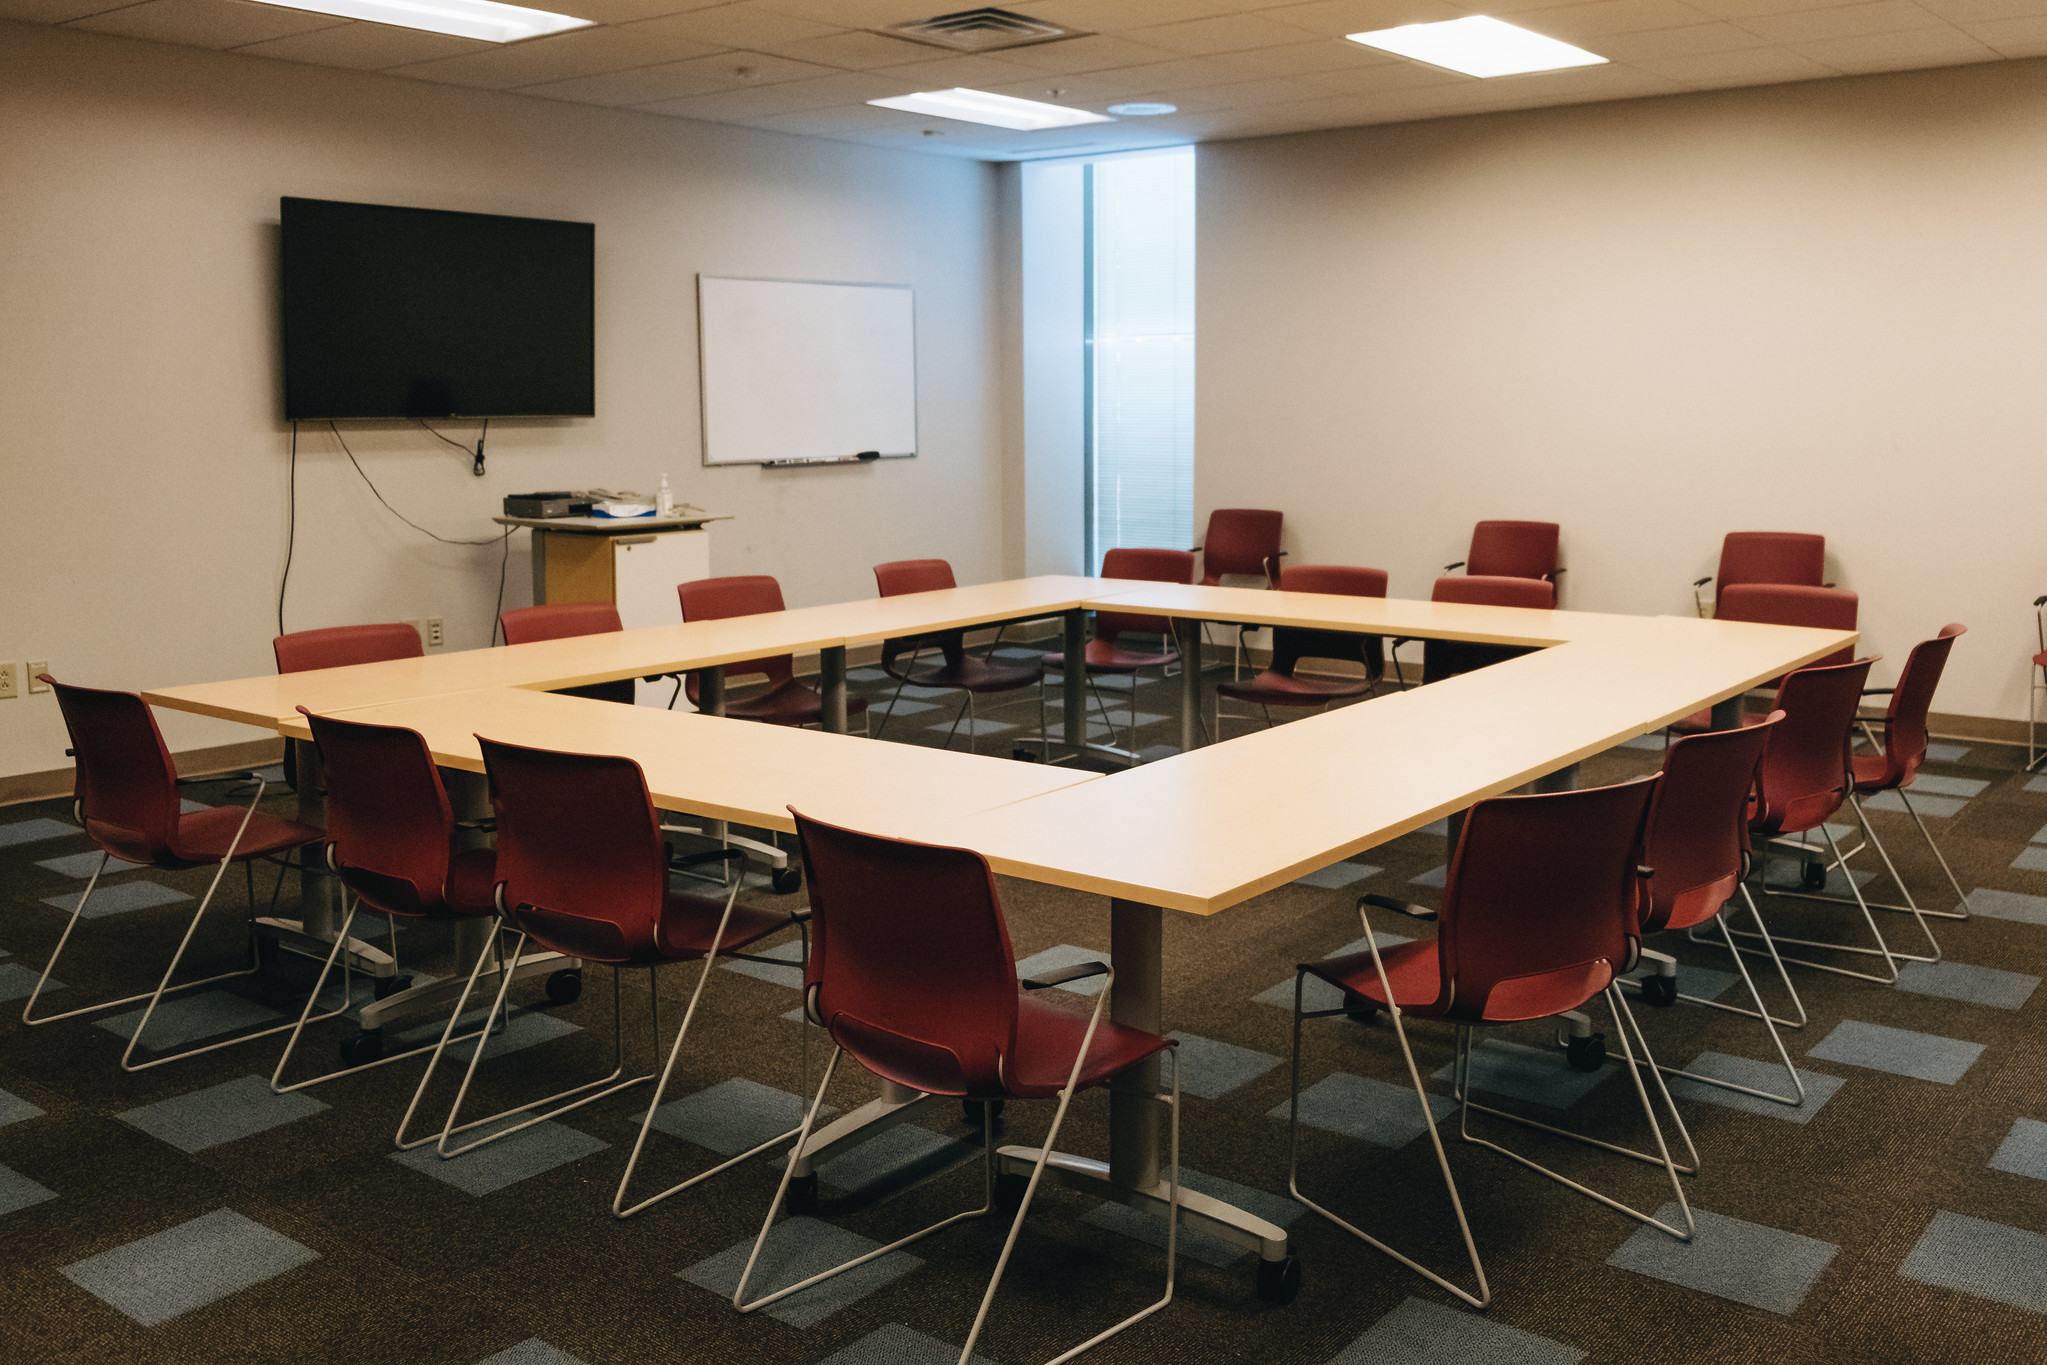 Meeting Room 2A